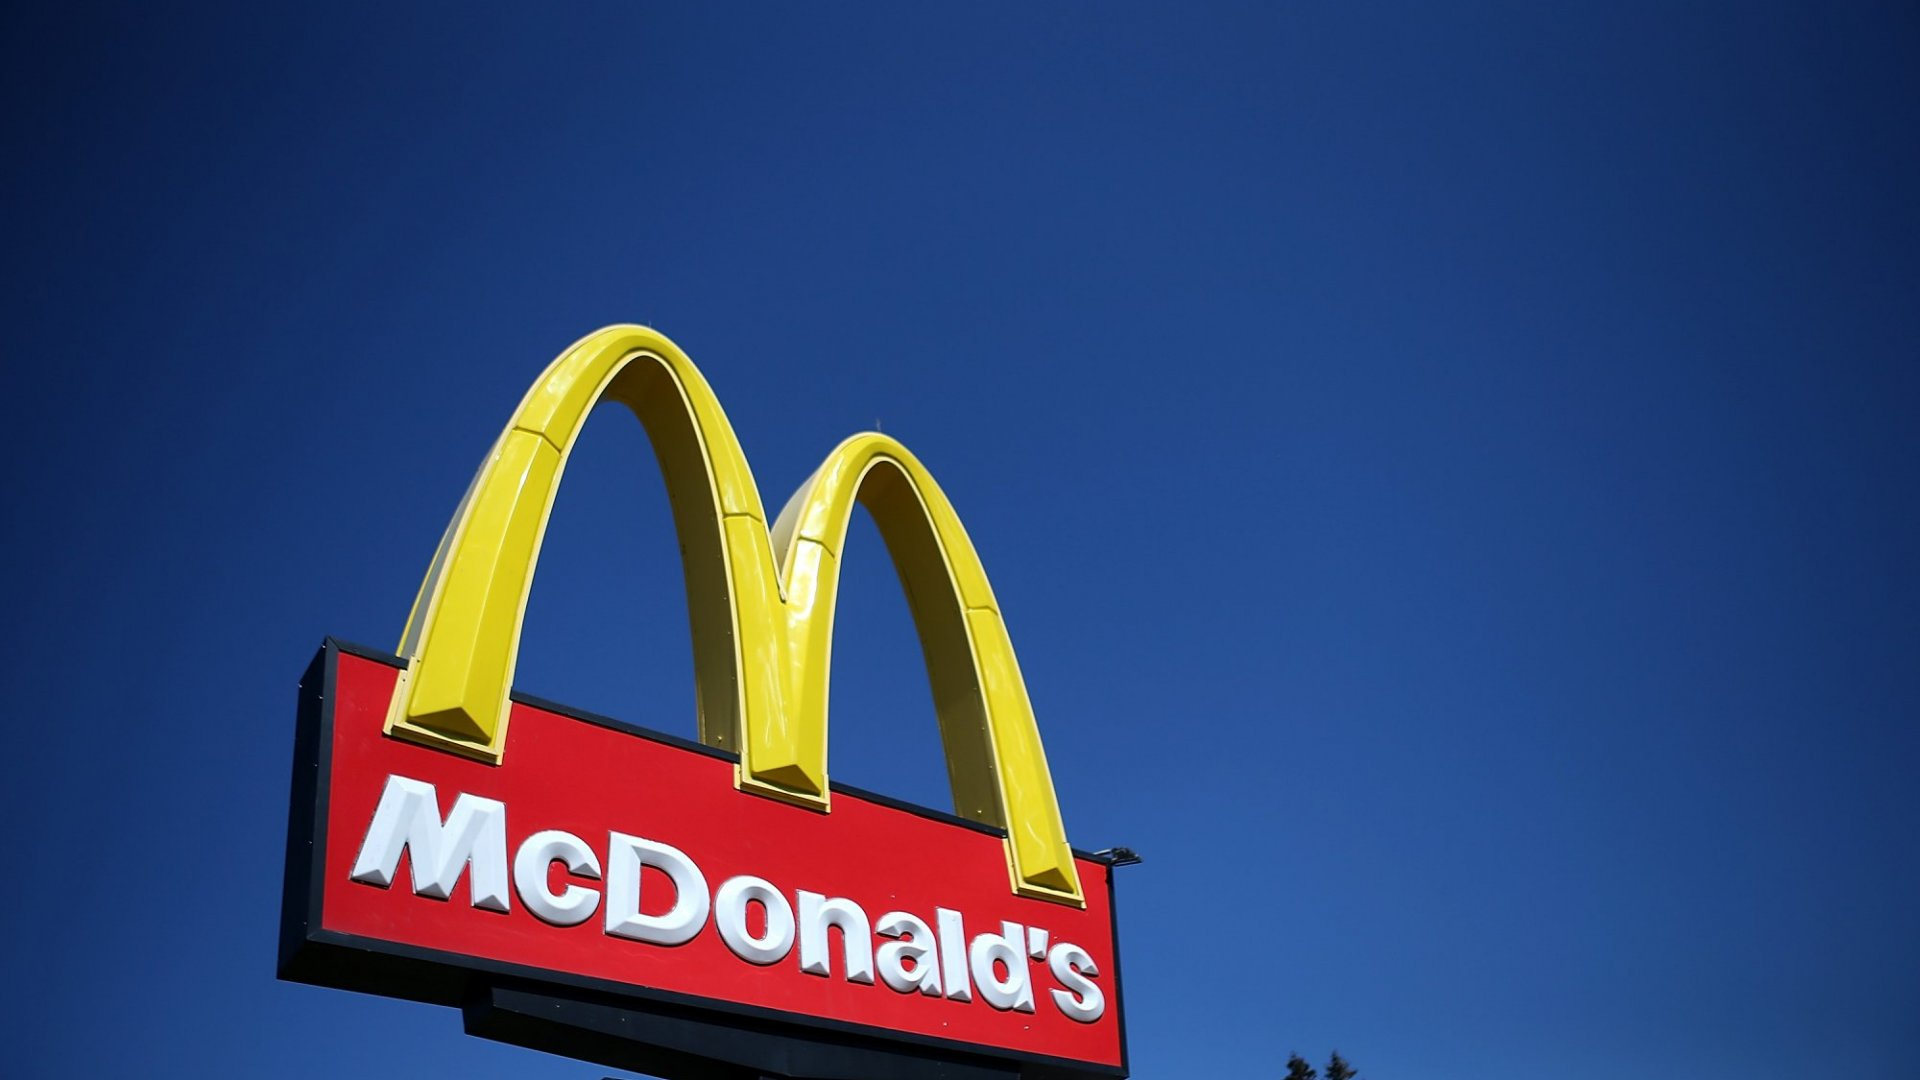 How You Order at McDonald's Could Accidentally Lead to Hordes of Upset Customers and Workers